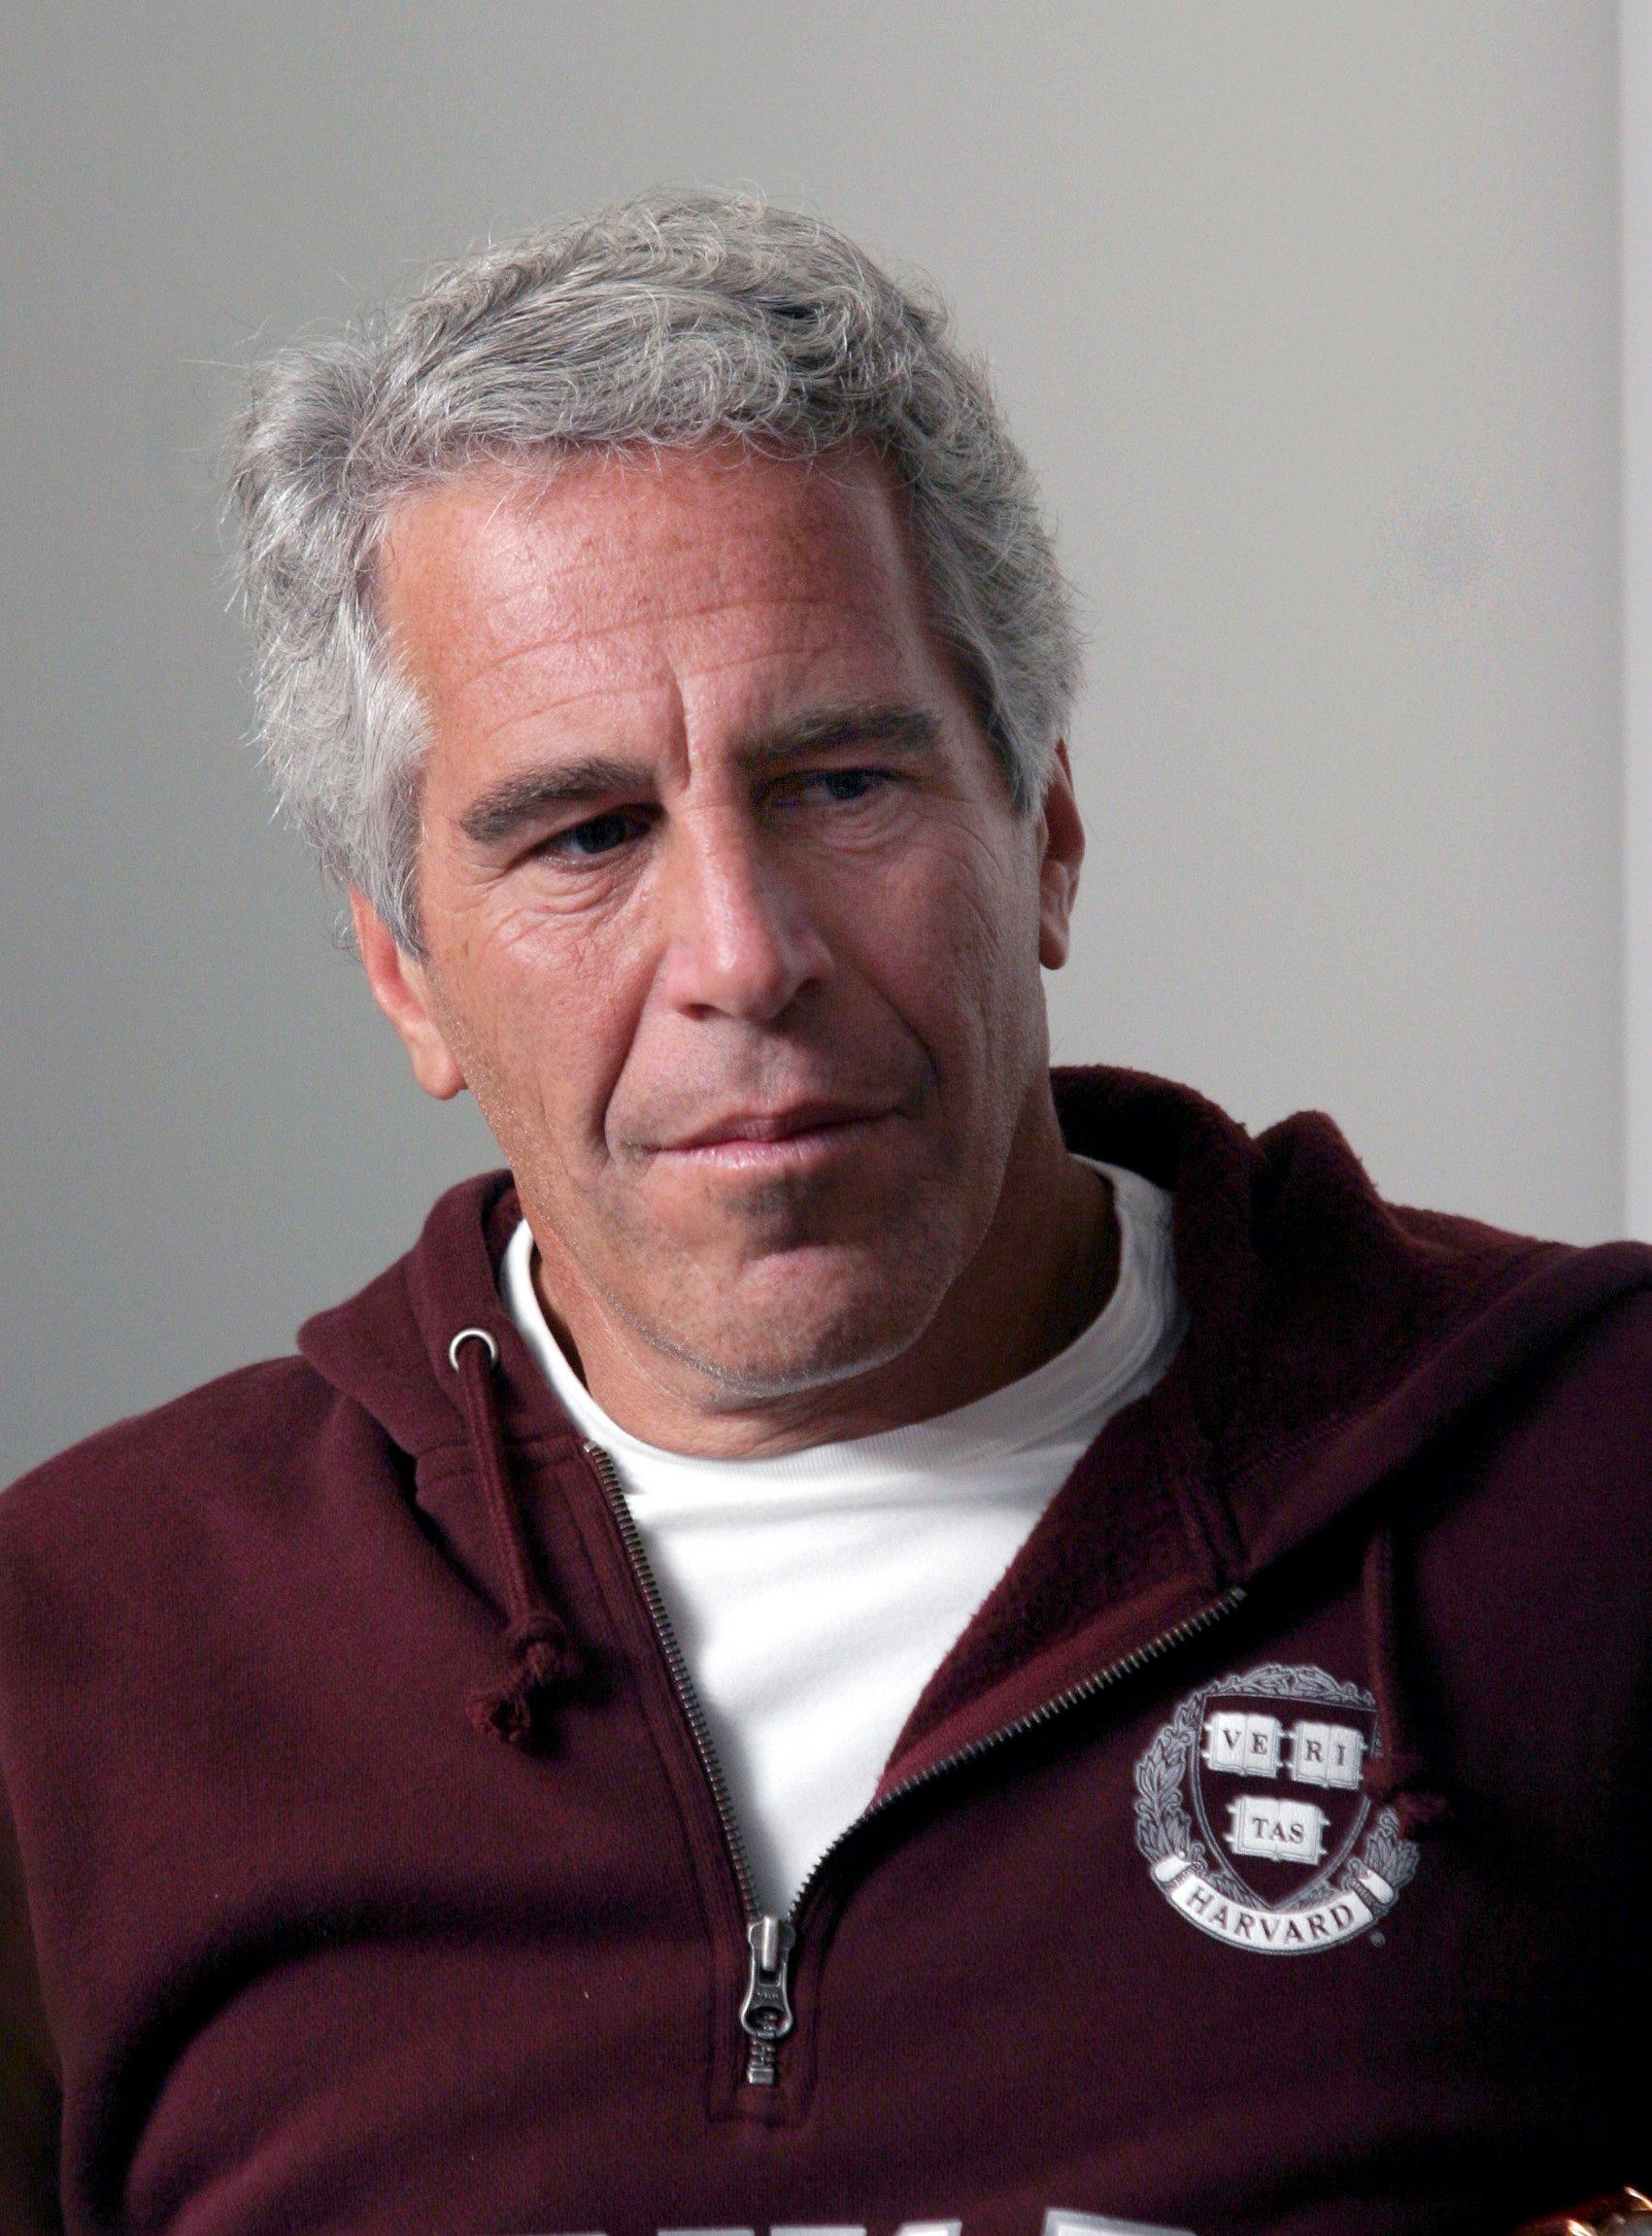 Billionaire Jeffrey Epstein Indicted on Accusations He Sexually Abused Girls as Young as 14